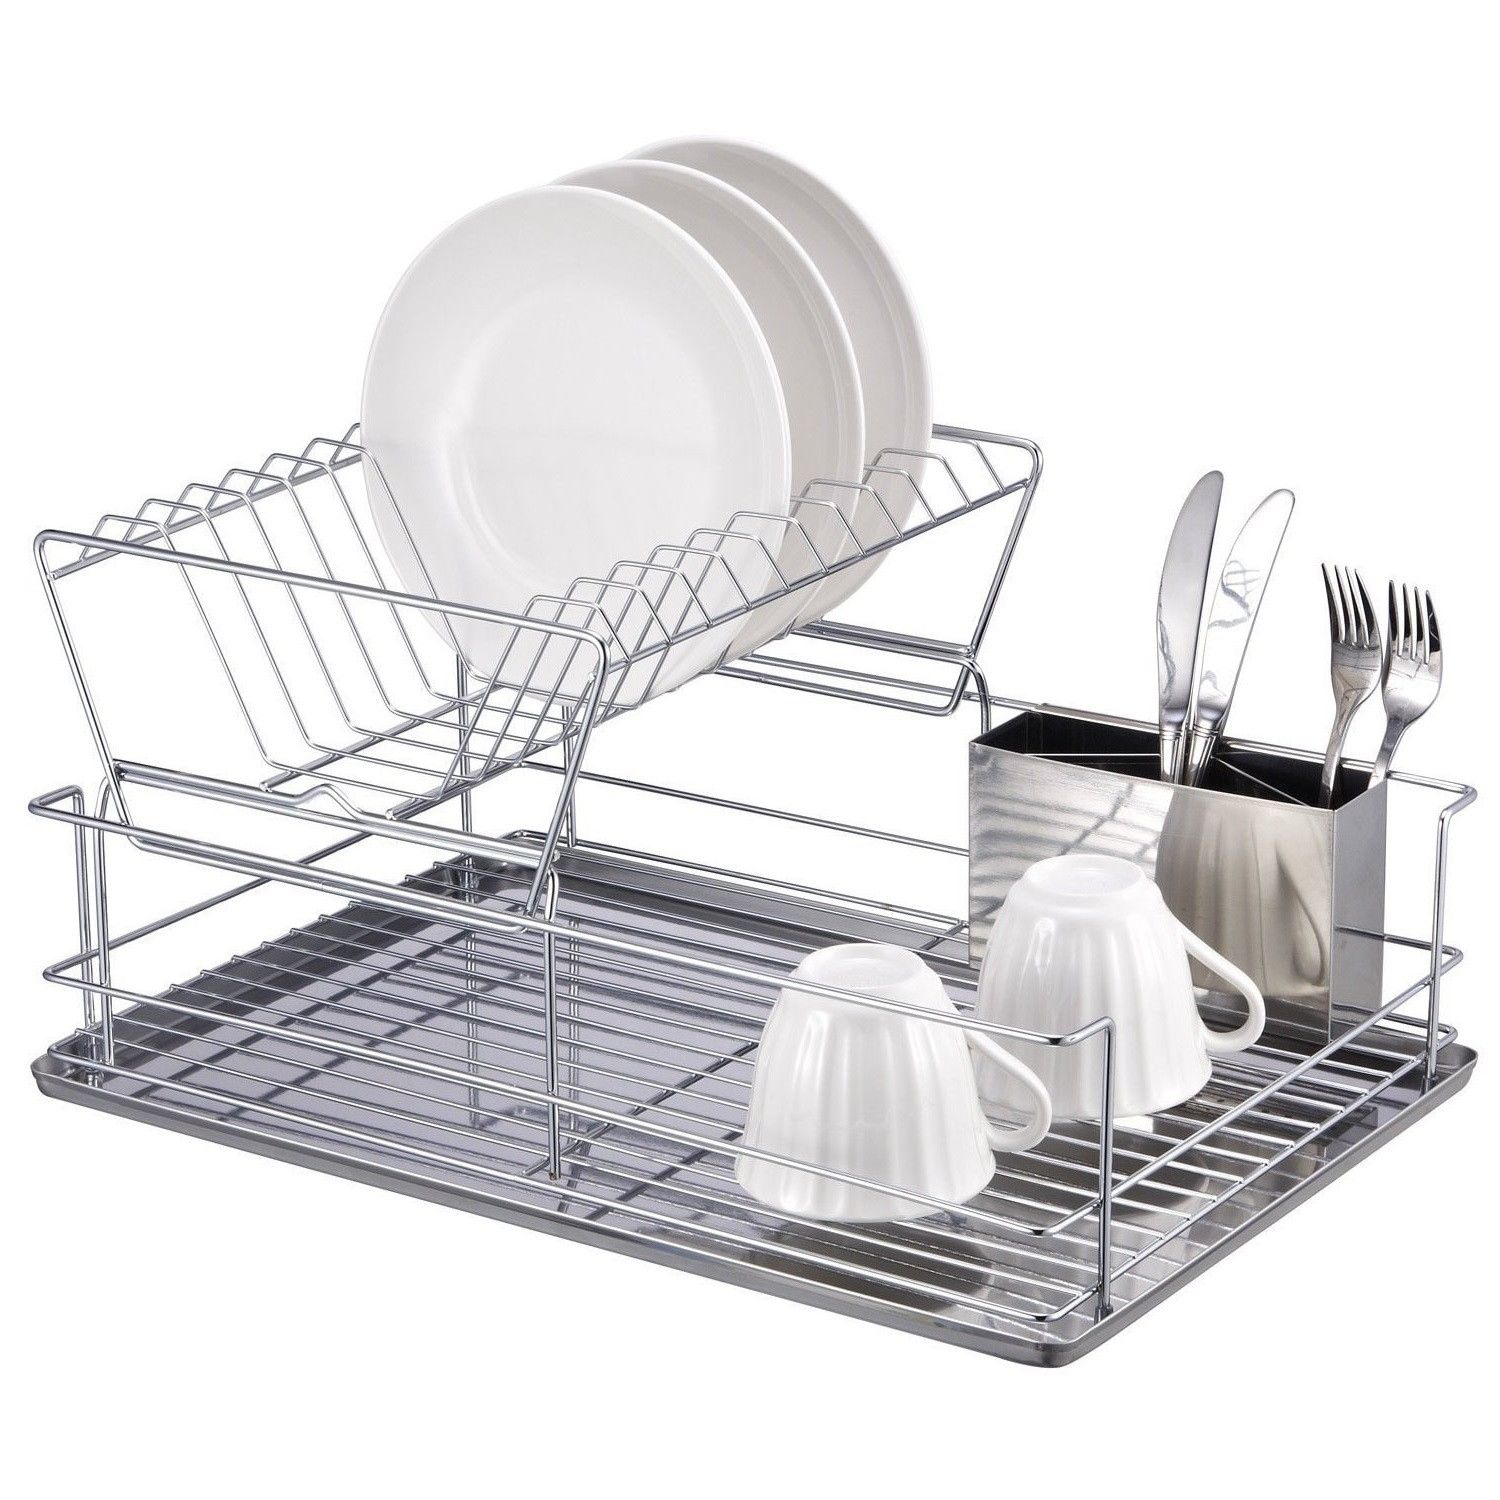 High Quality Chrome Dish Drainer 4 Piece Rack Dish Holder / Rack